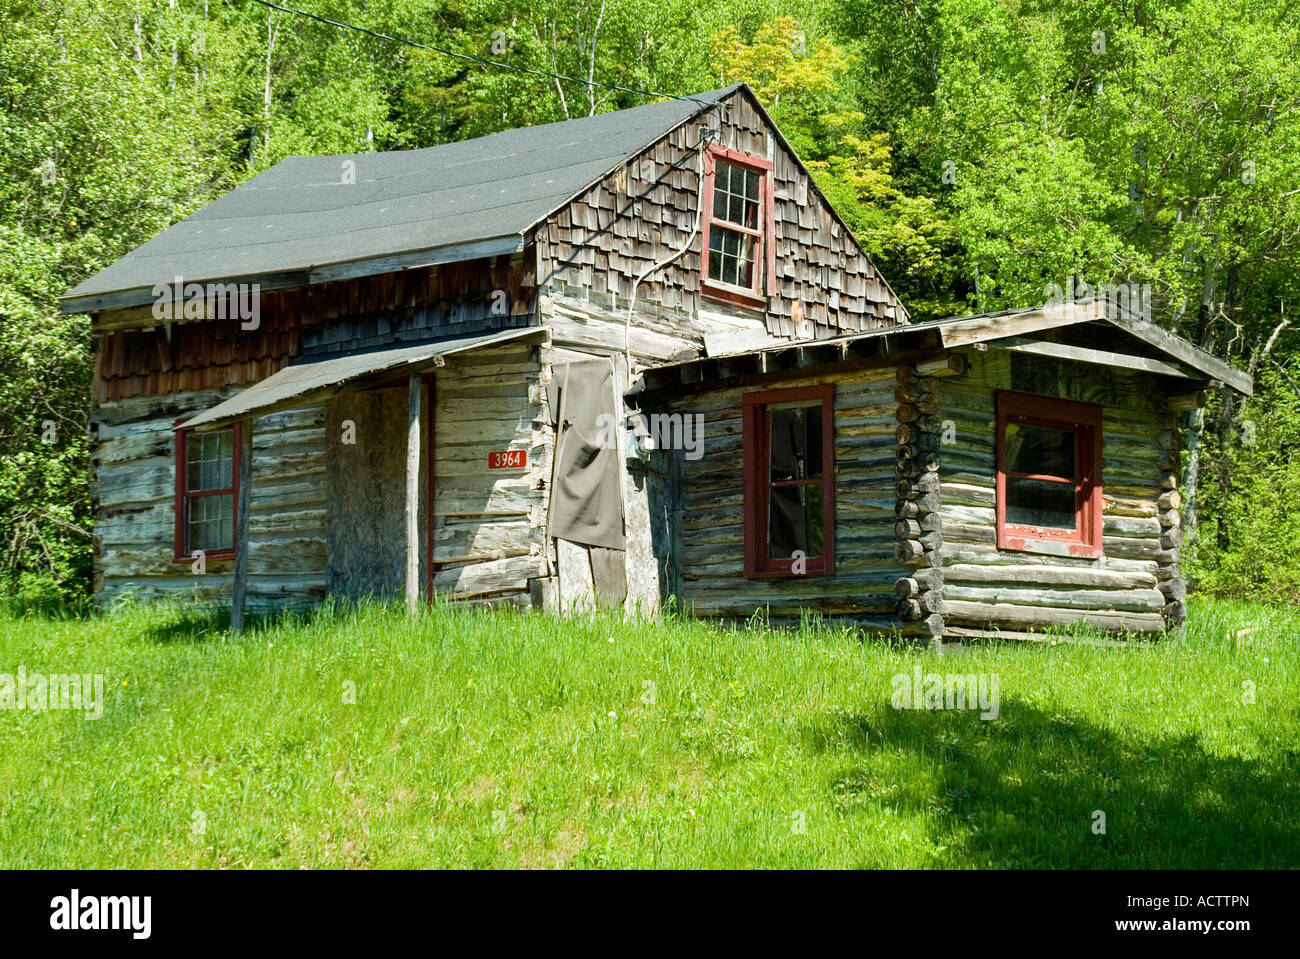 AN OLD LOG CABIN IN THE GREENS OF UPPER PENINSULA OF